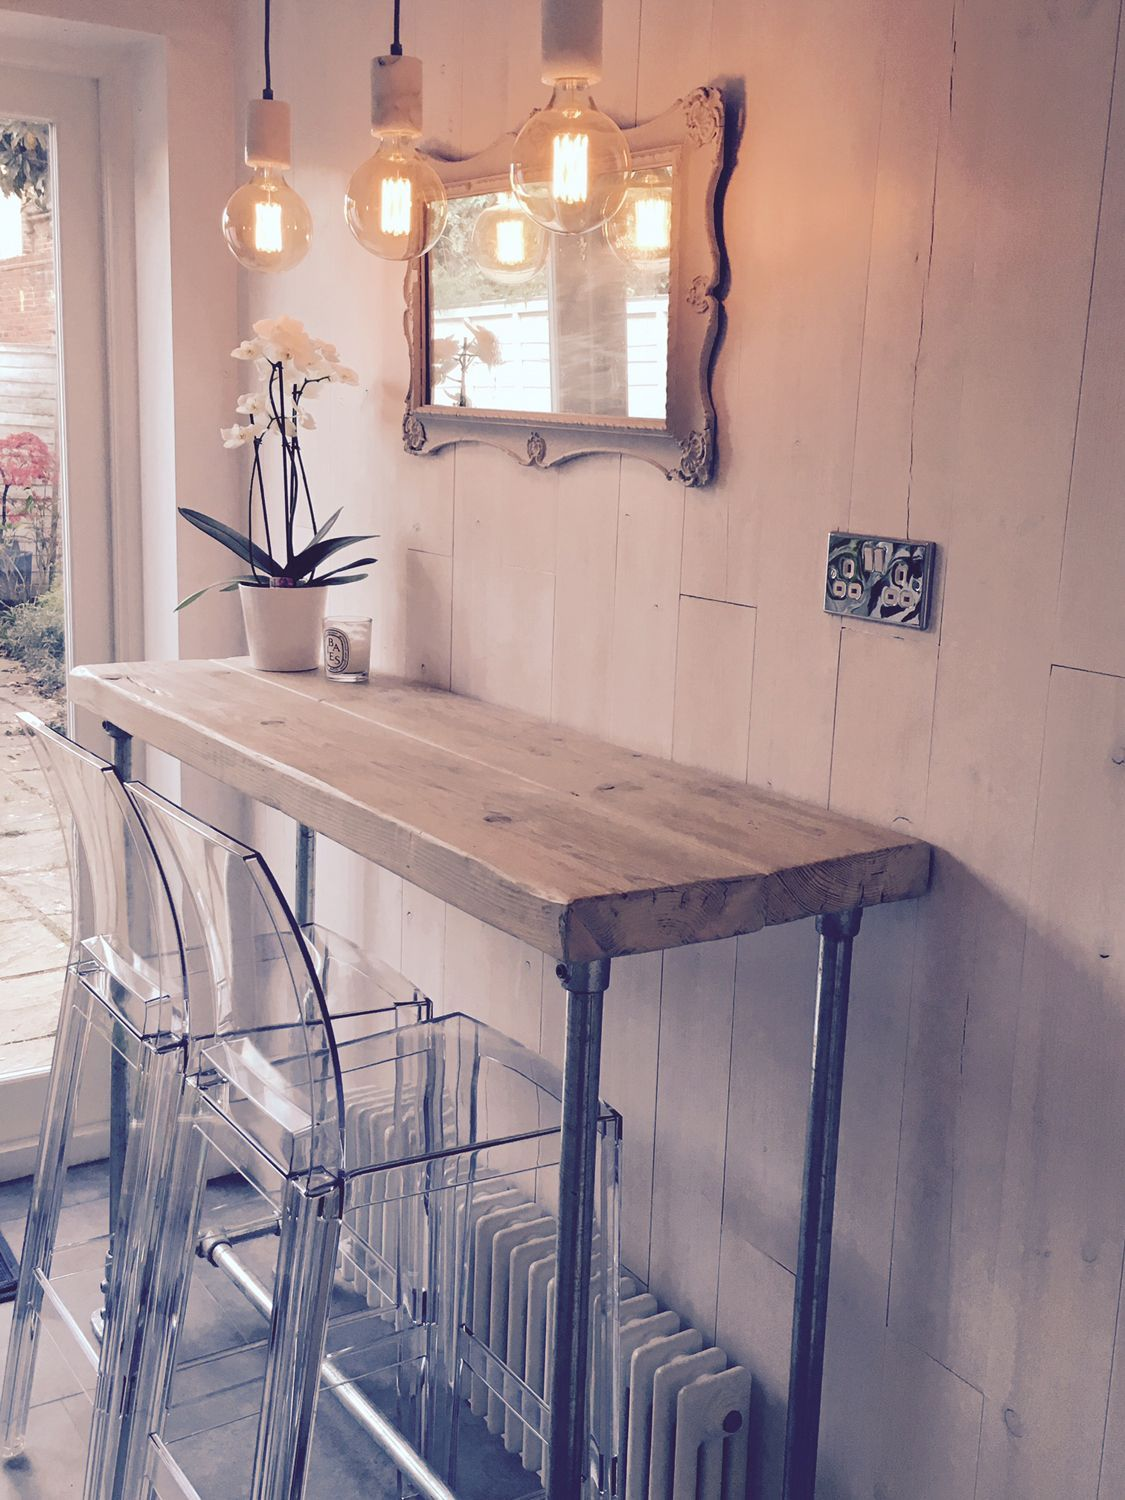 Find Out Why We Love Industrial Style Restaurants So Much Kitchen Bar Table Industrial Style Dining Table Breakfast Bar Table